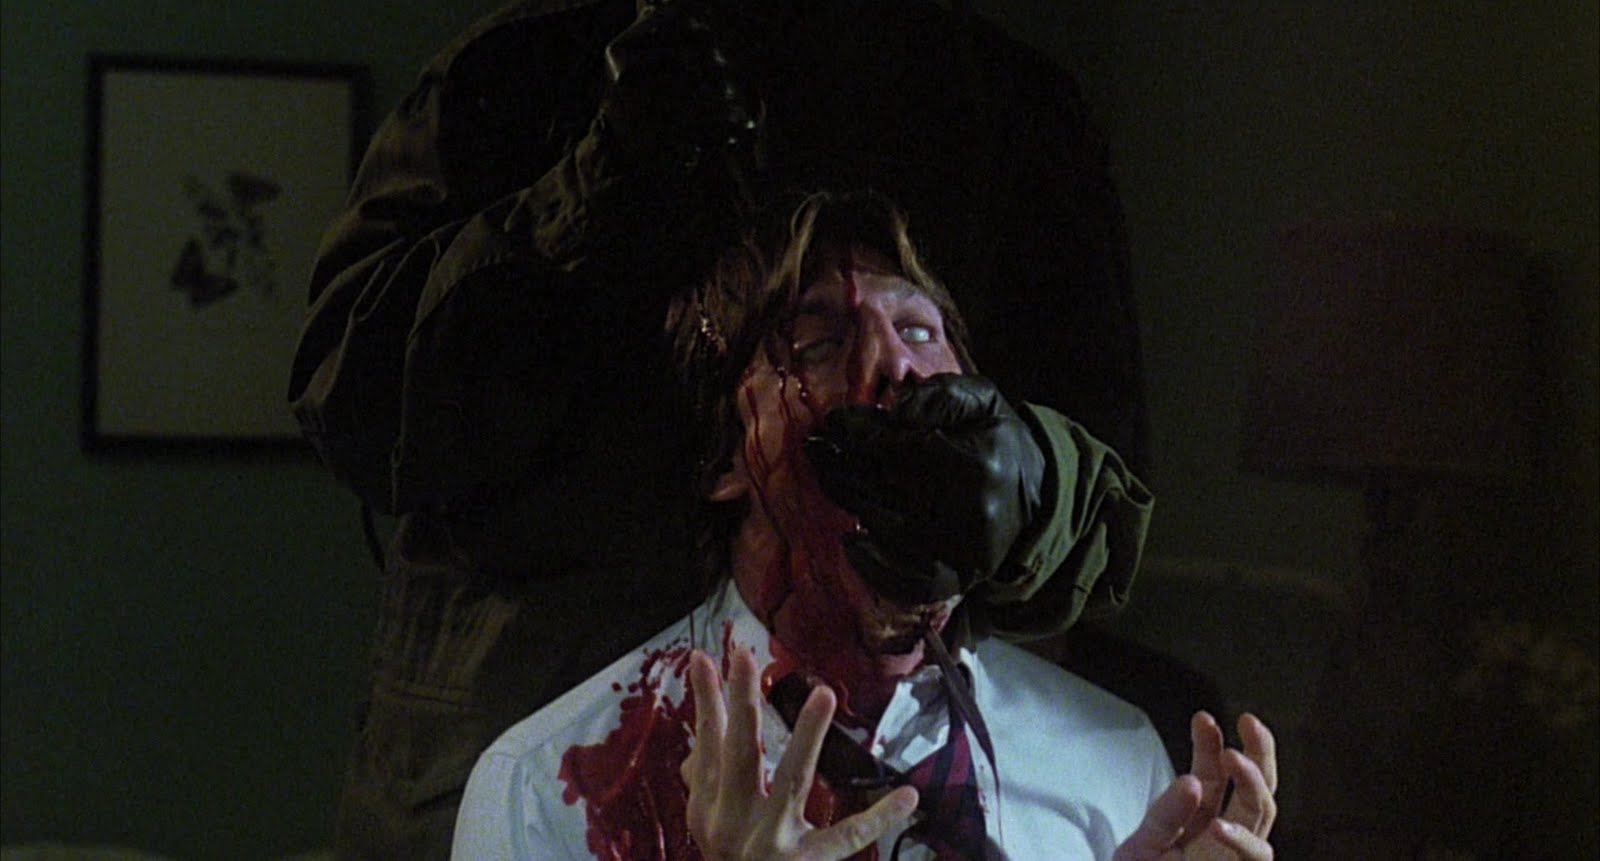 David Sederholm receives a knife through the head in The Prowler (1981)